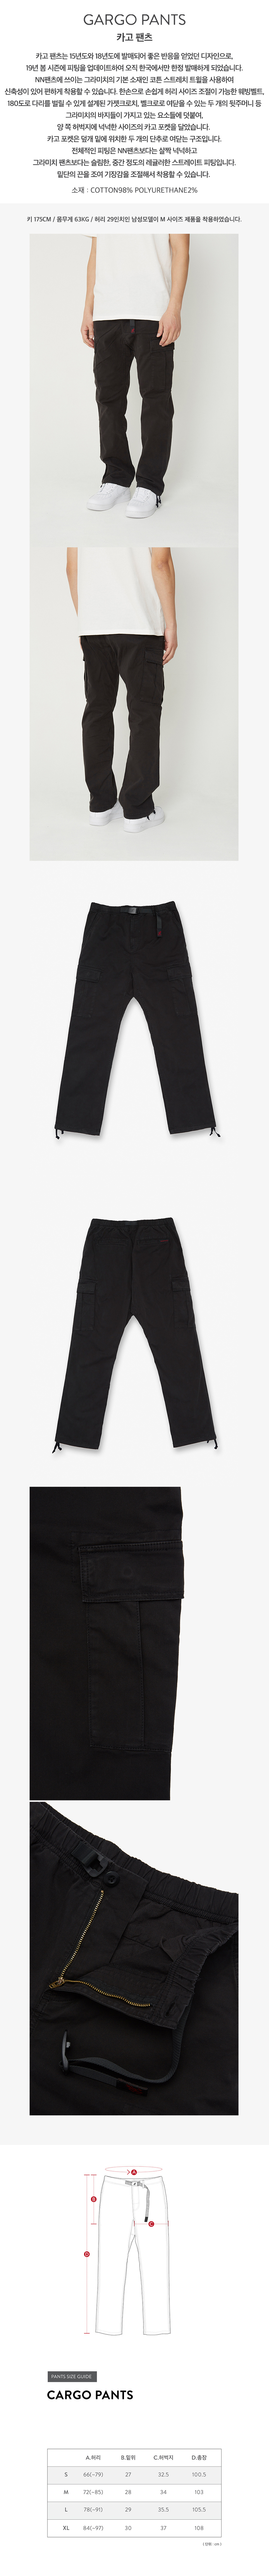 그라미치(GRAMICCI) CARGO PANTS BLACK